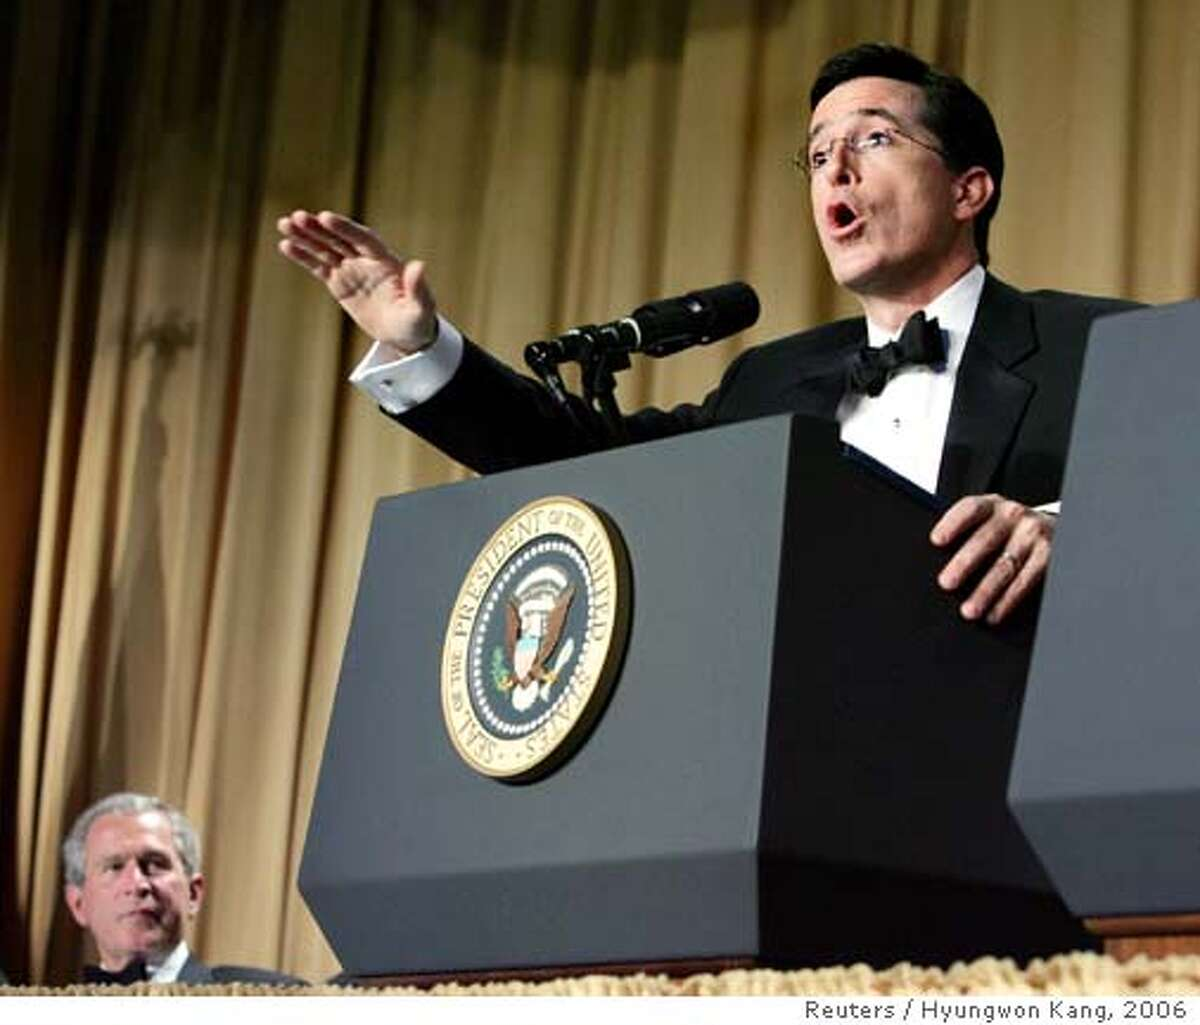 Comedian Stephen Colbert (R) provides the entertainment as U.S. President George W. Bush (L) watches during the White House Correspondents' Association Dinner in Washington, April 29, 2006. REUTERS/Hyungwon Kang Ran on: 05-07-2006 Ran on: 12-31-2006 Mel Gibsons mouth got him in trouble (his mug shot is inset). Stephen Colberts speech told it like it was in Washington, above right.